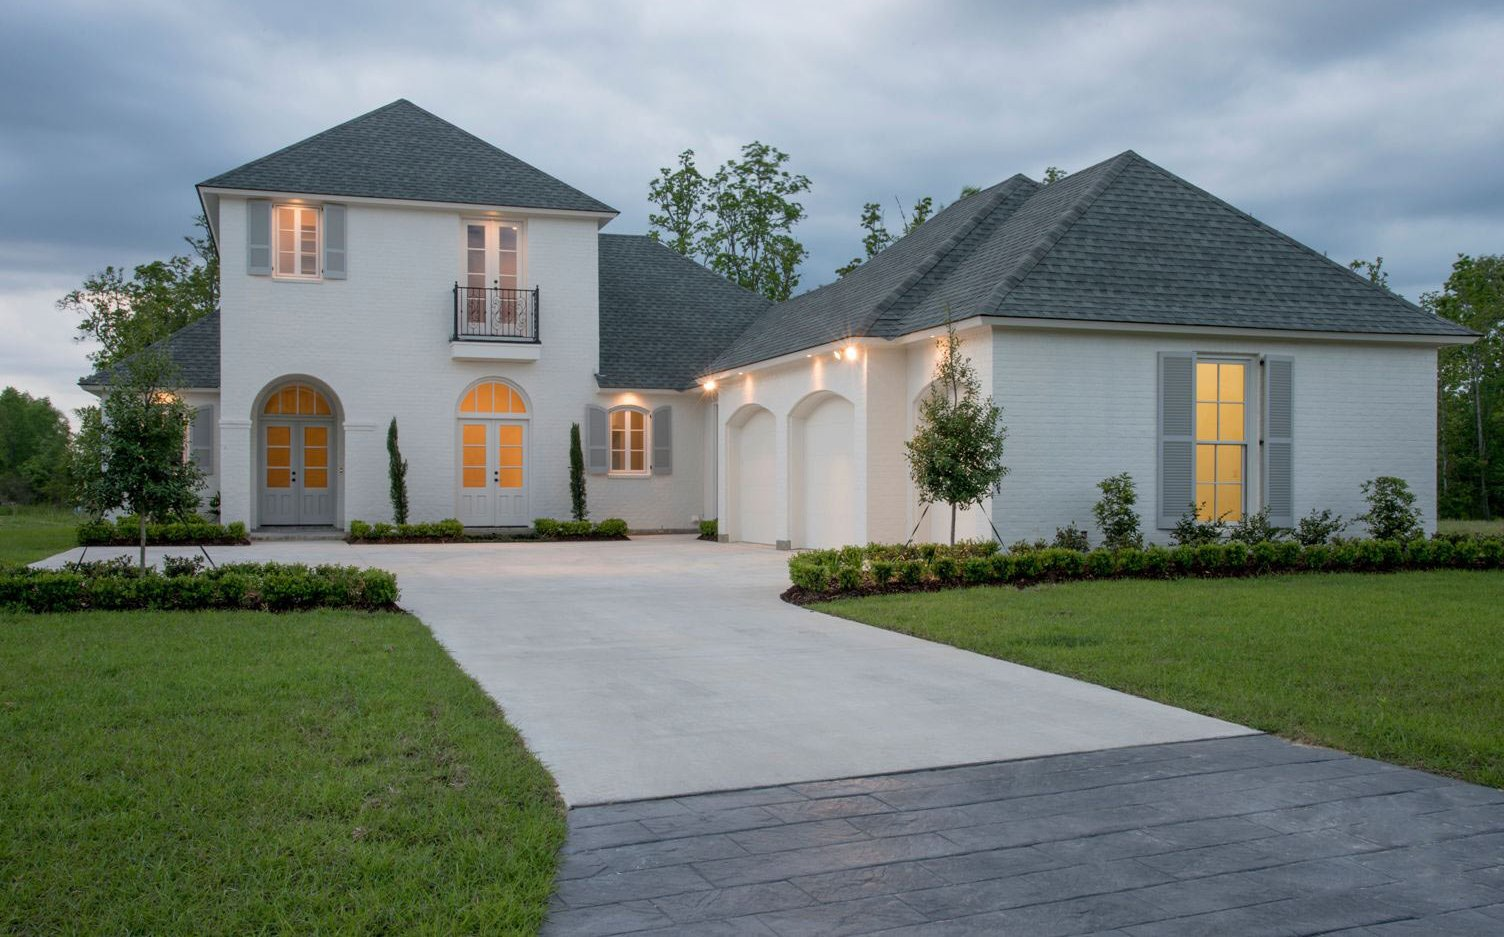 Custom Home Builders Residential & Commercial Construction